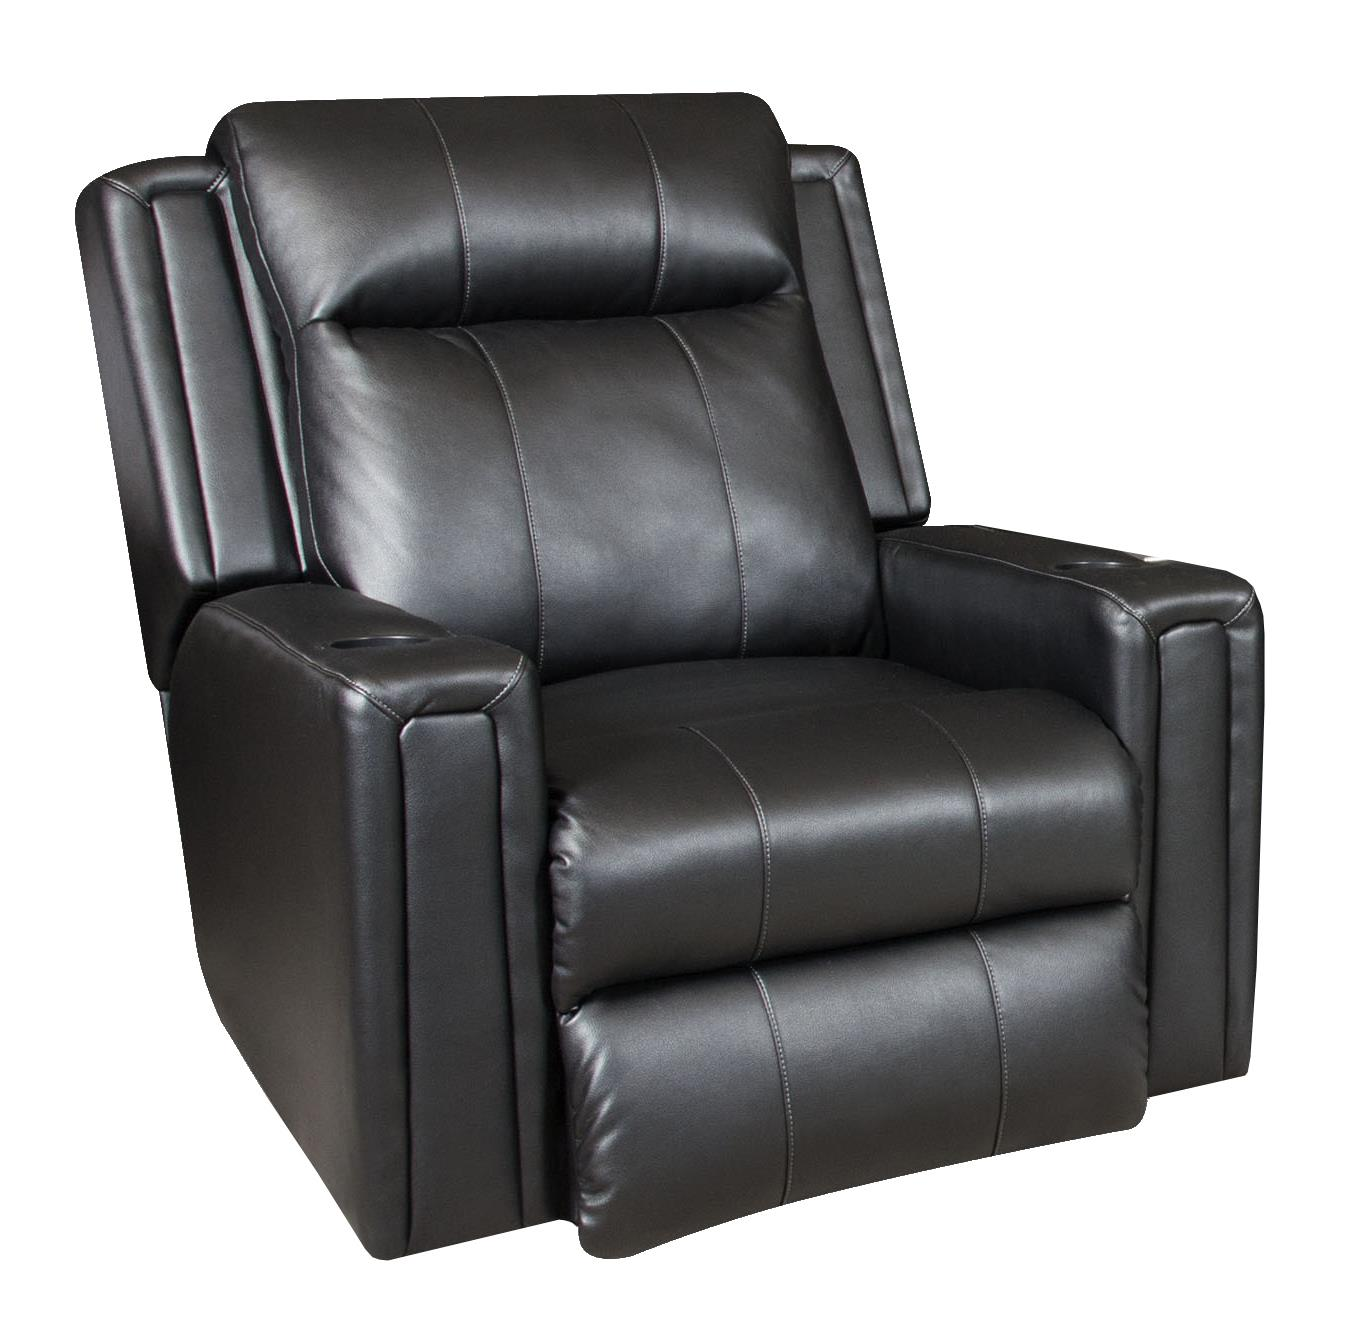 Southern Motion Curve Wall Hugger Recliner with Power Headrest - Item Number: 6858P-205-13